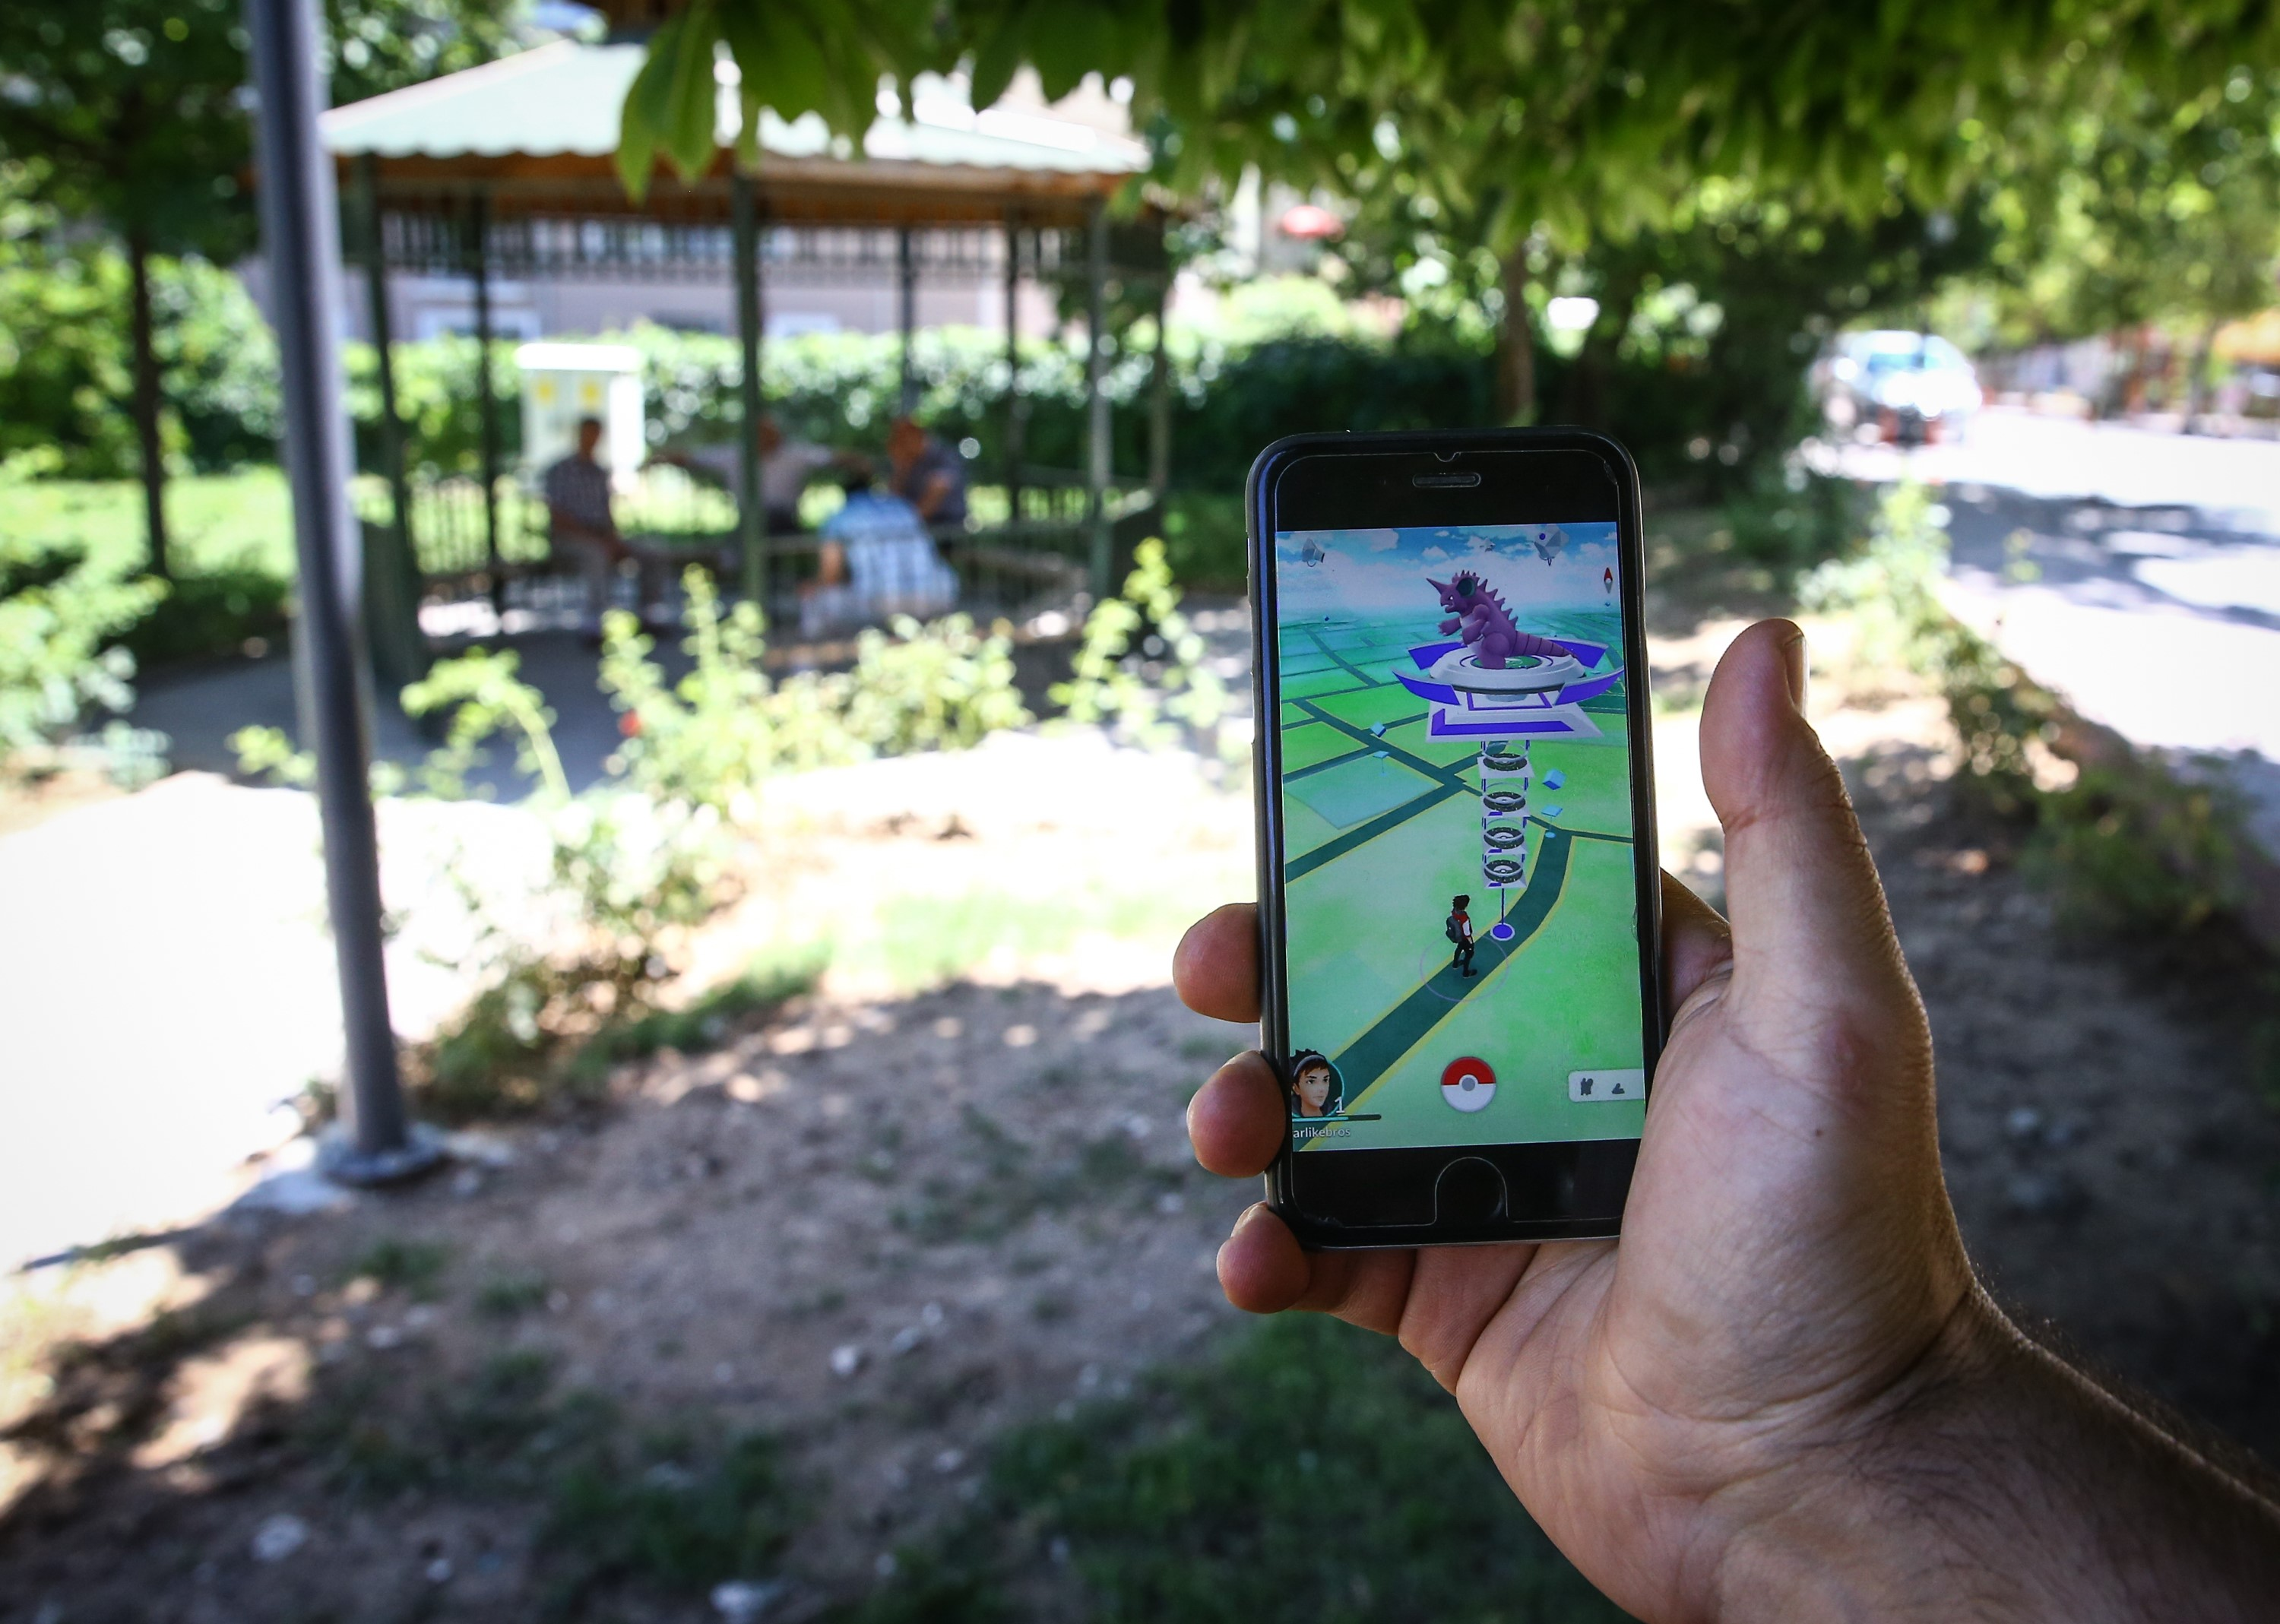 Some Pokémon Go players given lifetime bans are being let back into